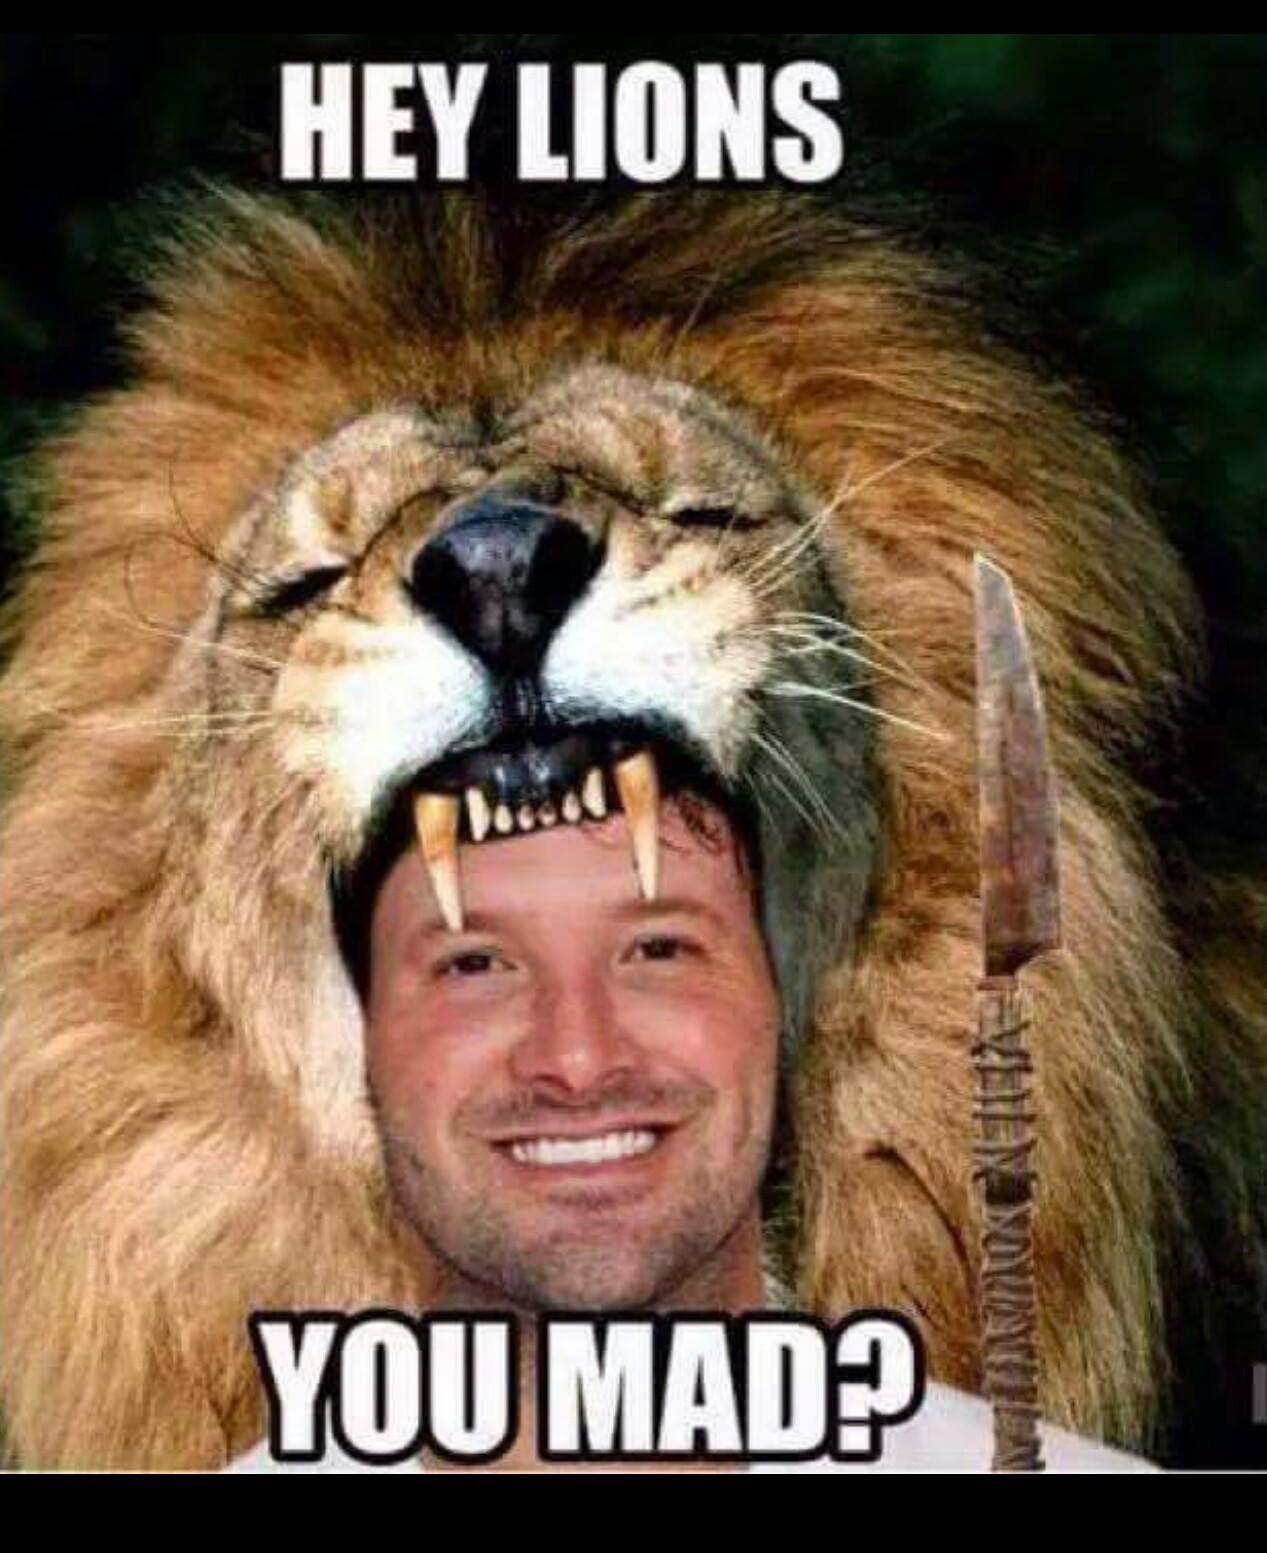 Hey Lions you mad?